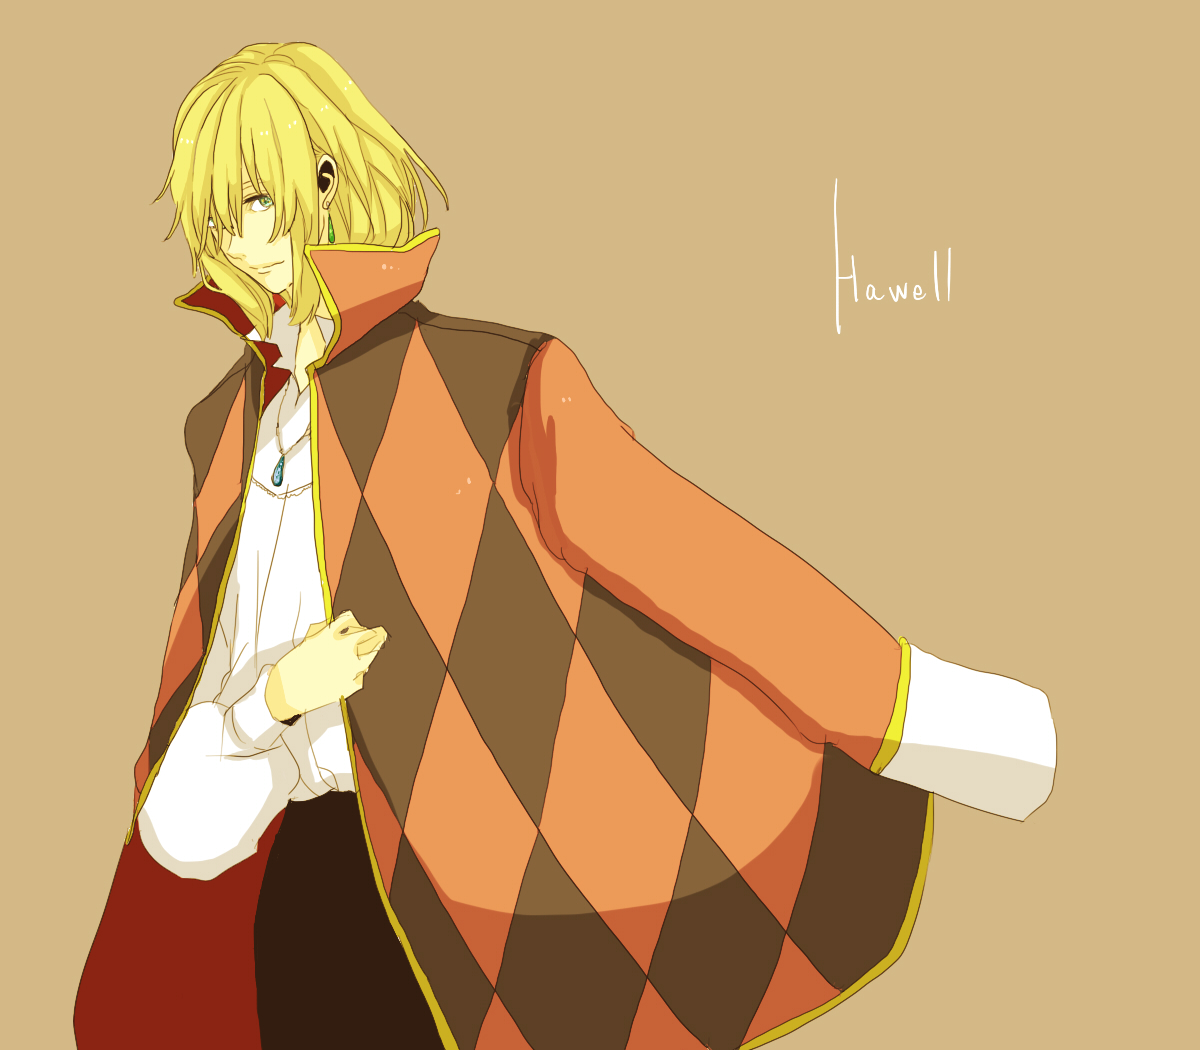 Howl s moving castle images fanart hd wallpaper and background photos